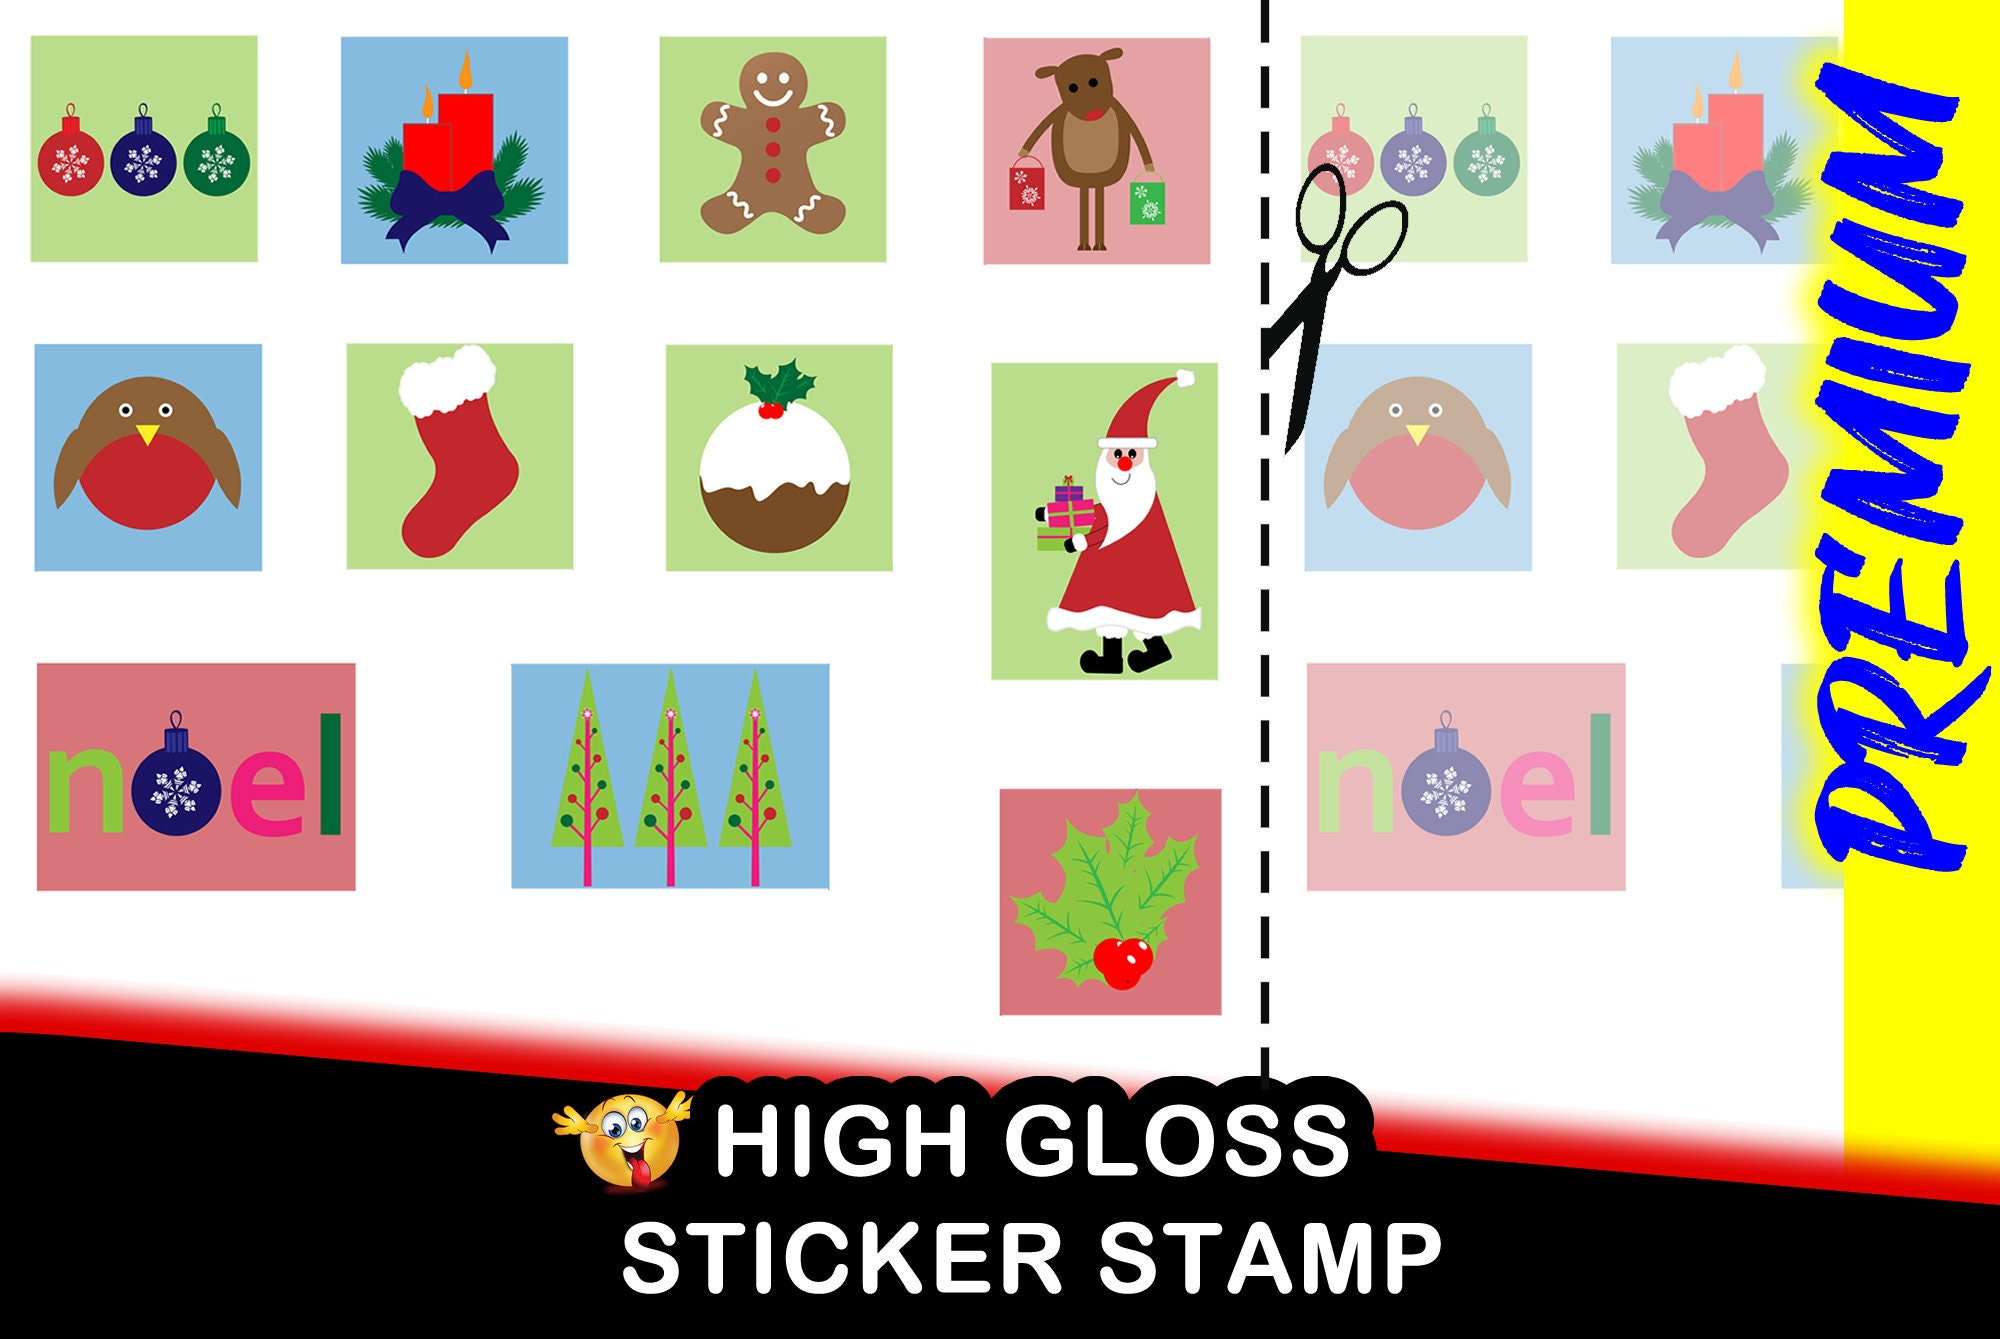 Premium Fun Christmas Stamp Sticker for Santa Claus gifts, Christmas Cards - Sheet of 11 each different from 1.5 x 2 inch- HIGH GLOSS